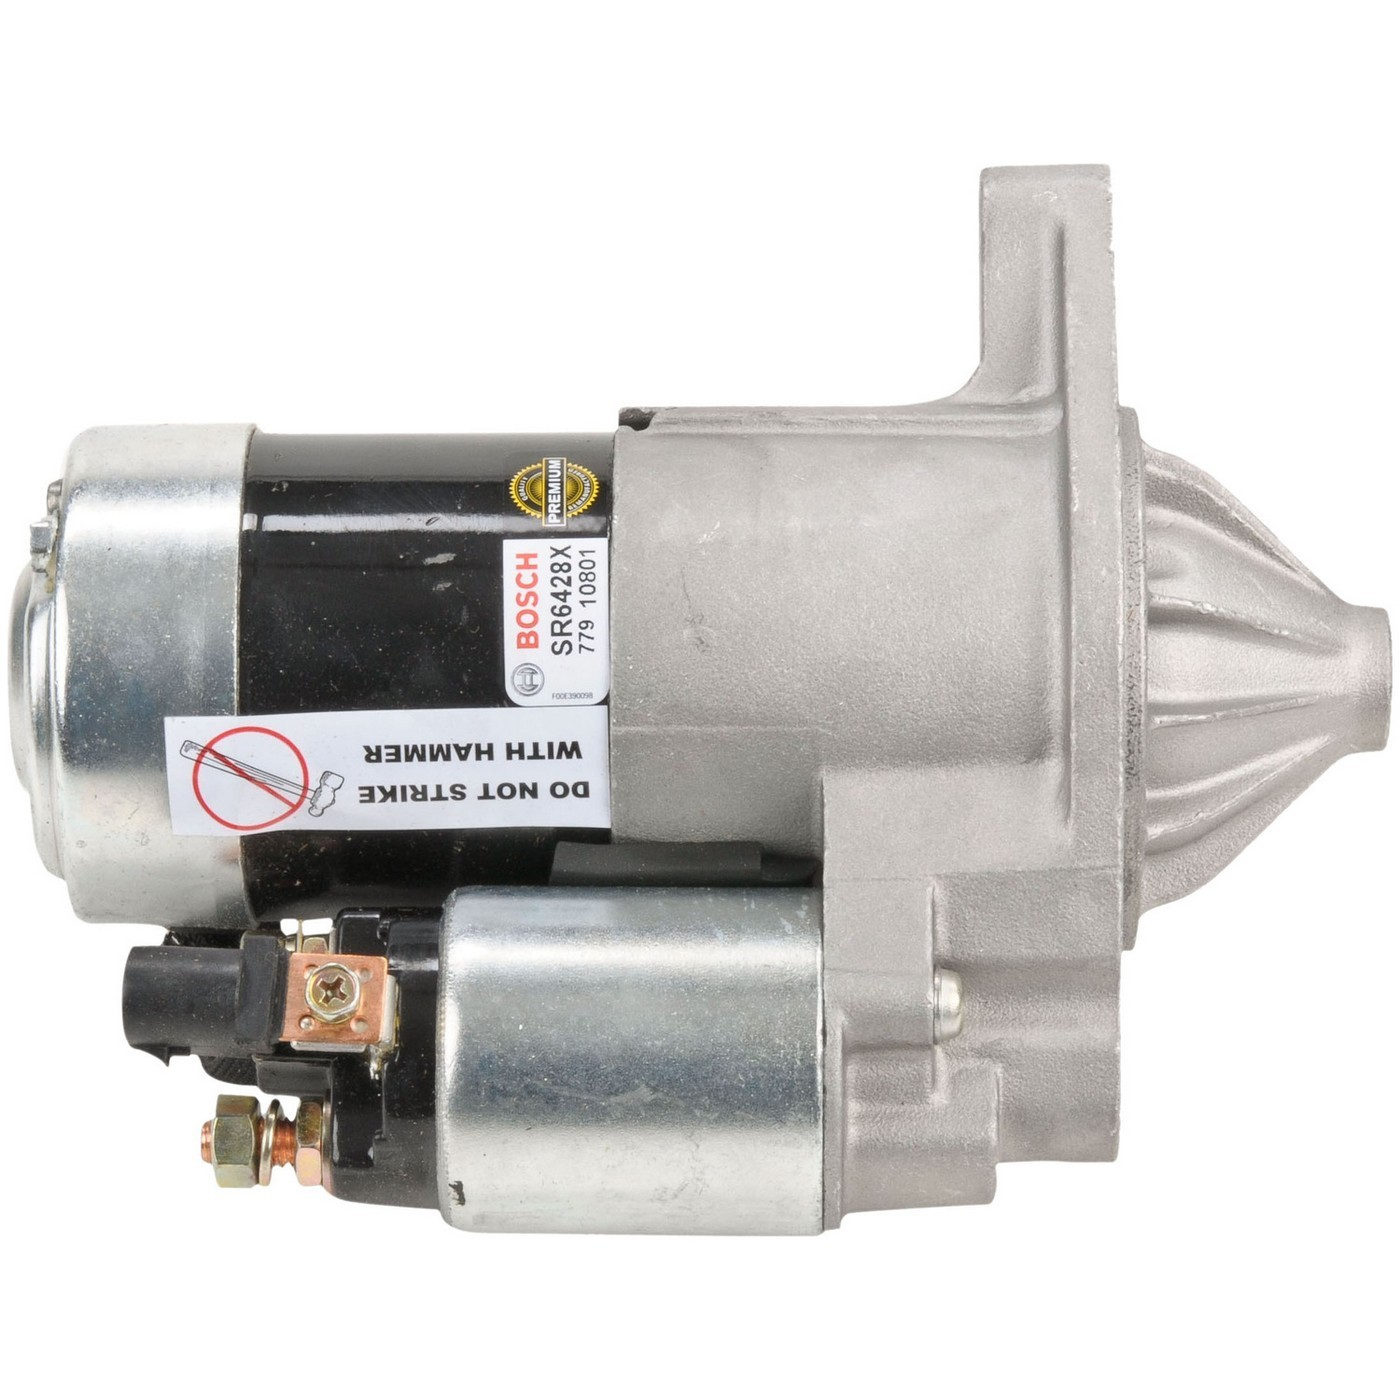 Rebuilt Engine Starters Bosch Auto Parts Remanufactured Fuel Pump Professional Preferred Starter Motors Are Built For Extreme Heat Cold And High Demand Every Component Is 100 Factory